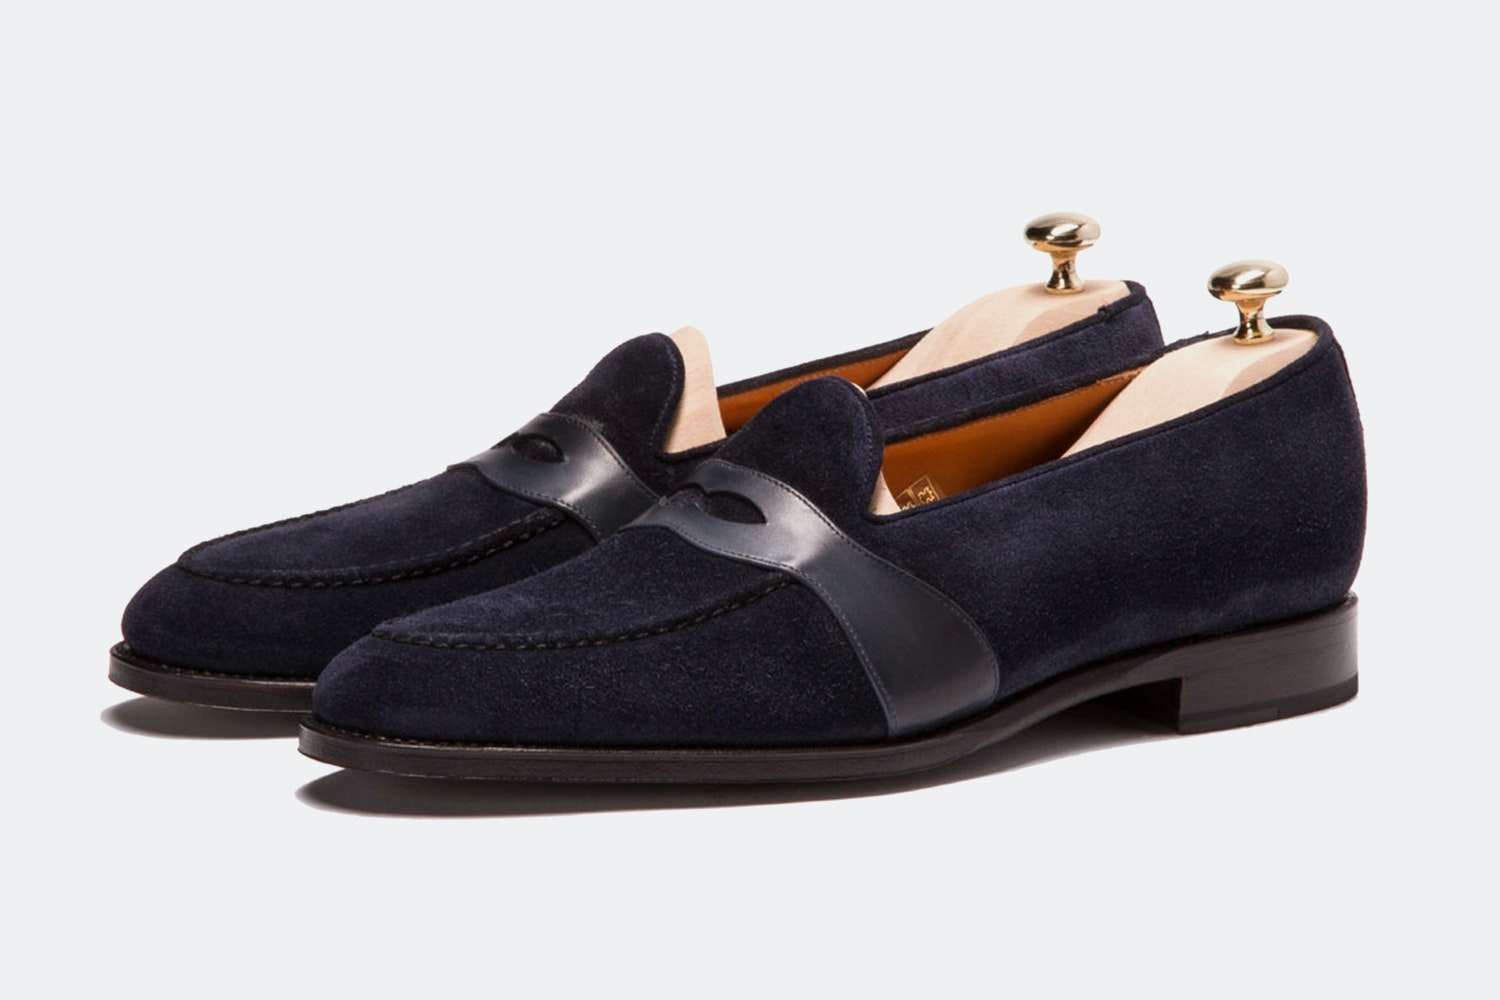 Navy Suede/Shaded Navy Calfskin